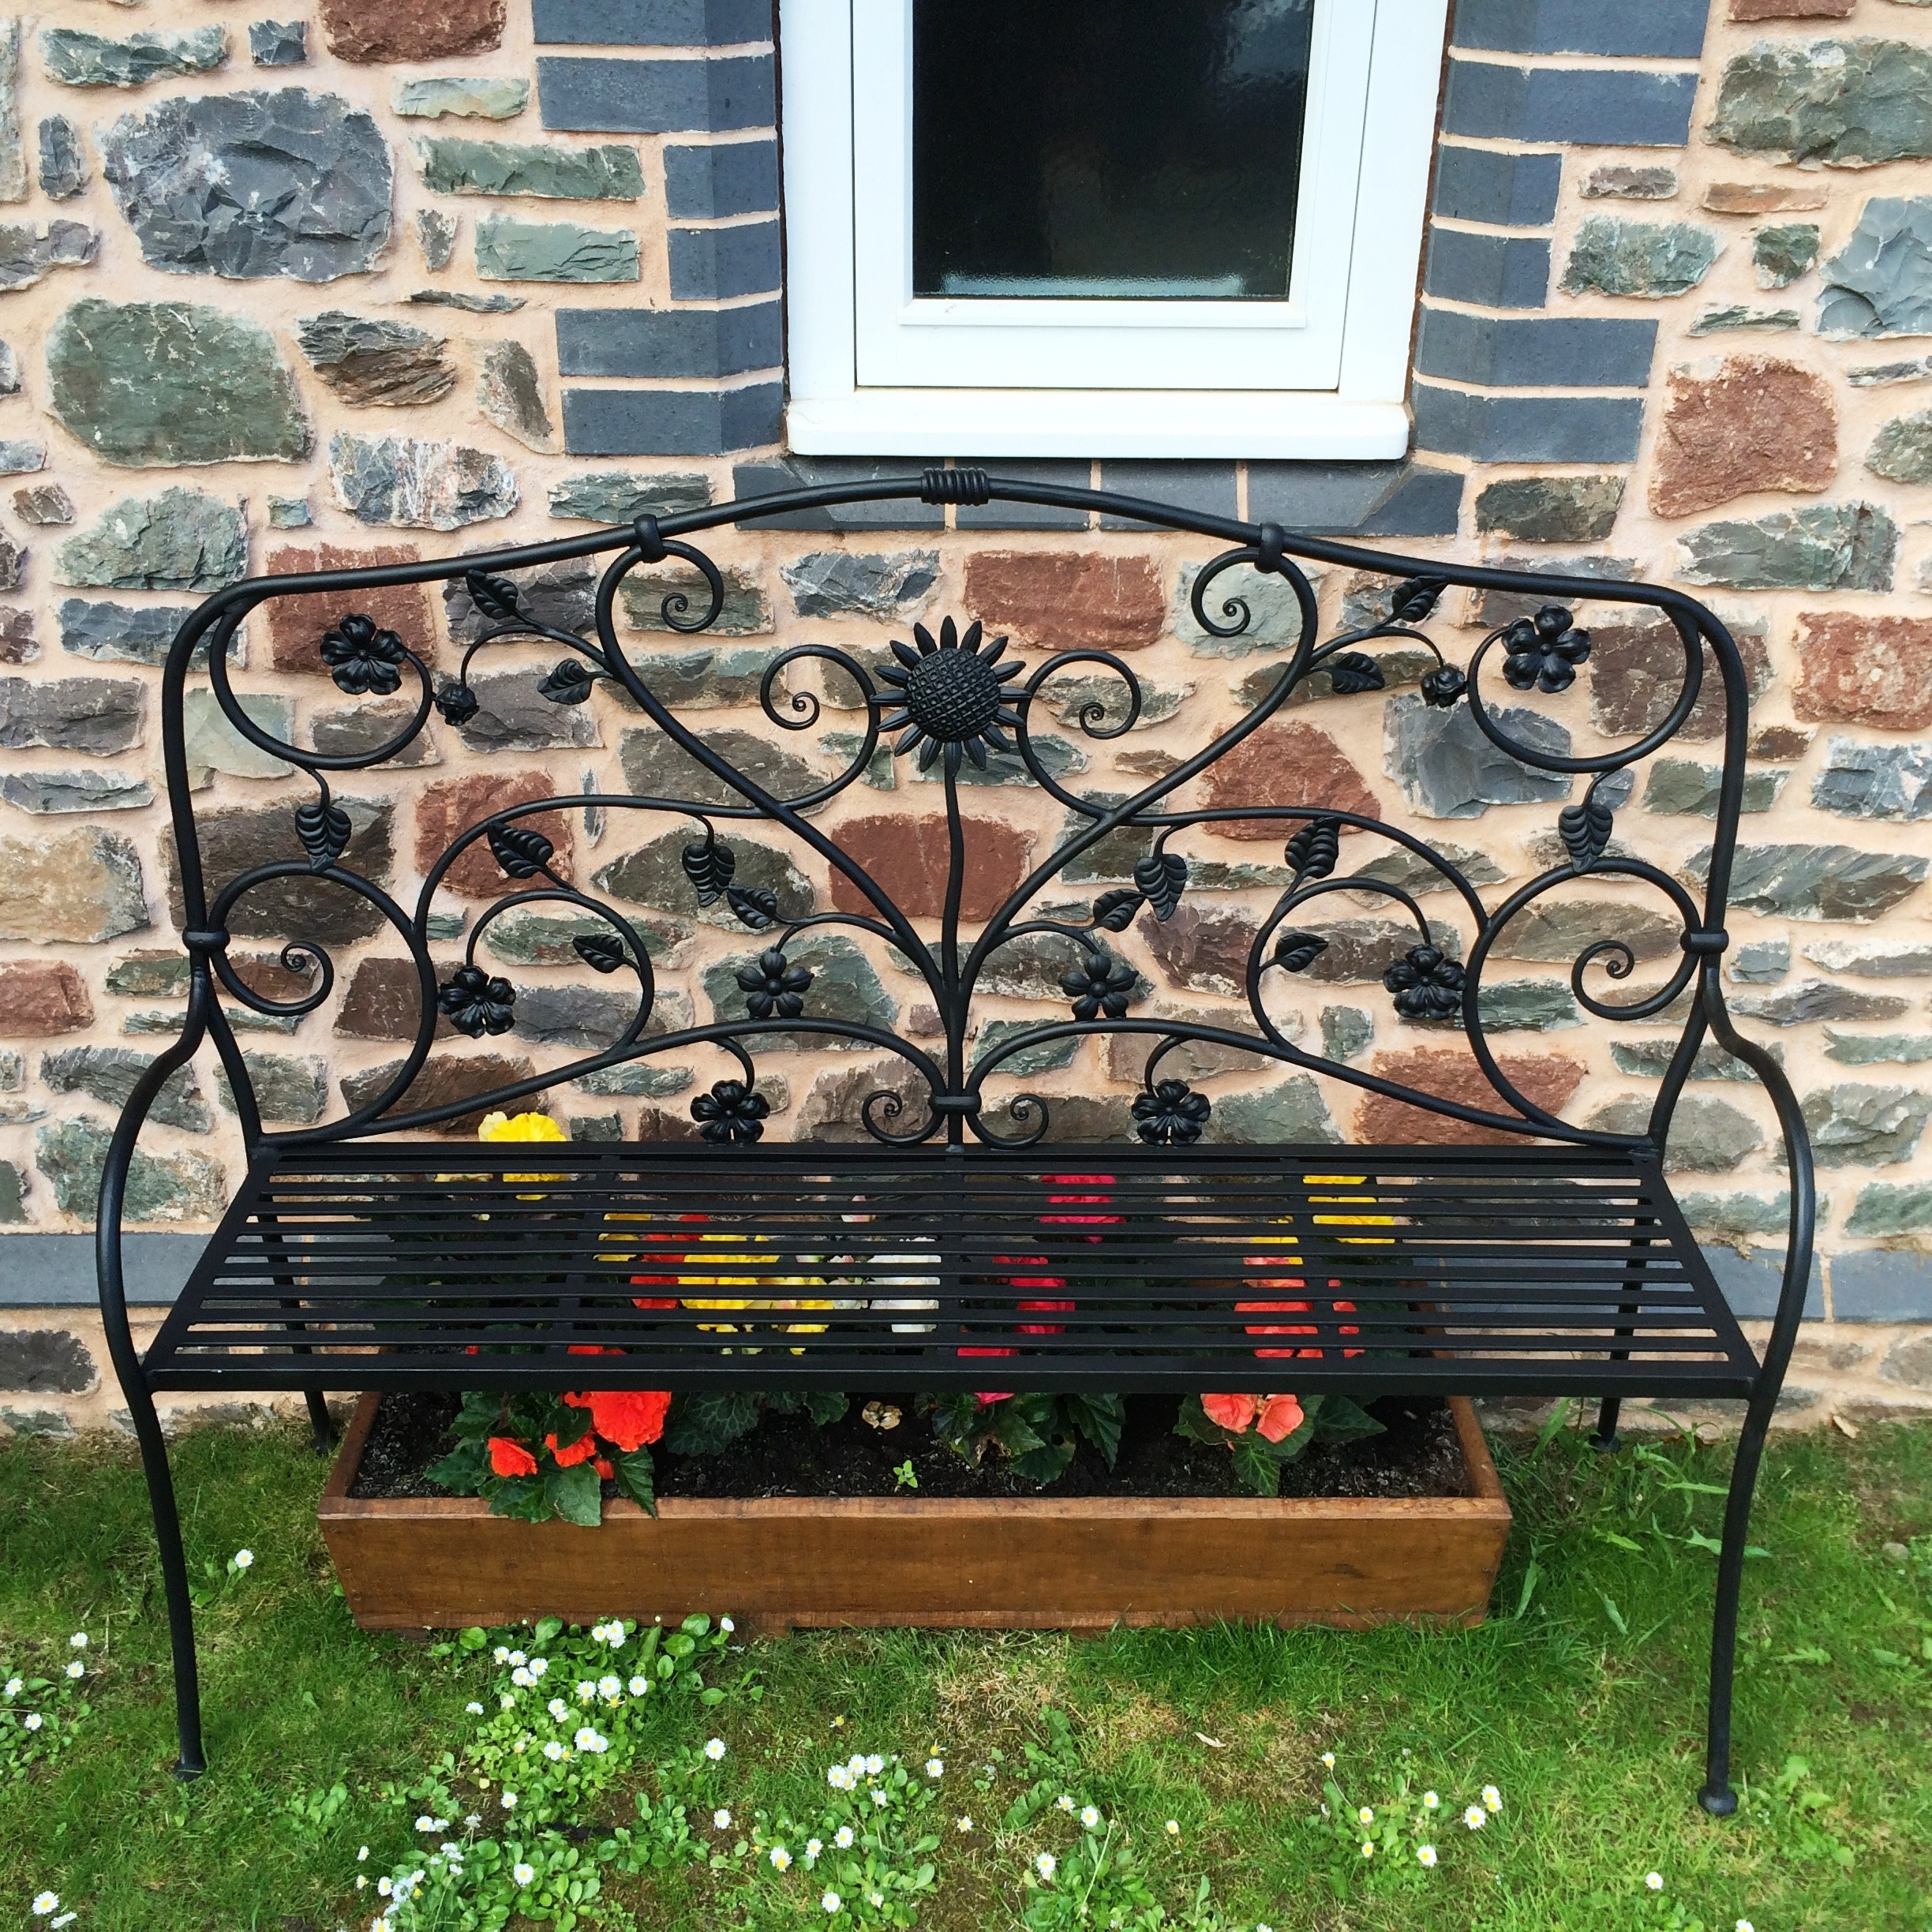 Bespoke garden bench - Designed and made for a private client by West Country Blacksmiths